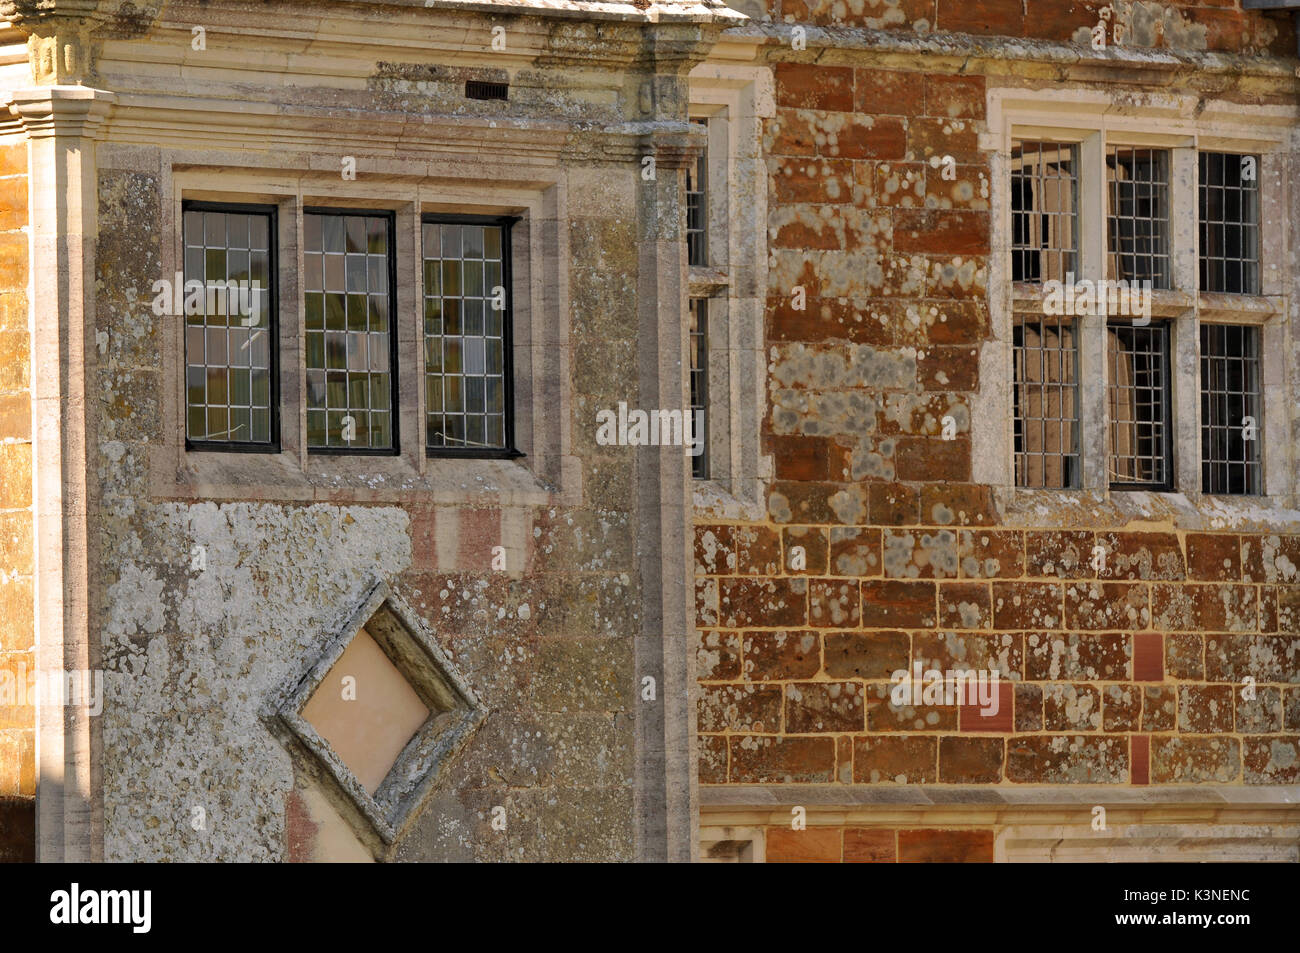 16th century manor houses windows and stonework window tax period property blocked out bricked up widows wolverton Stock Photo